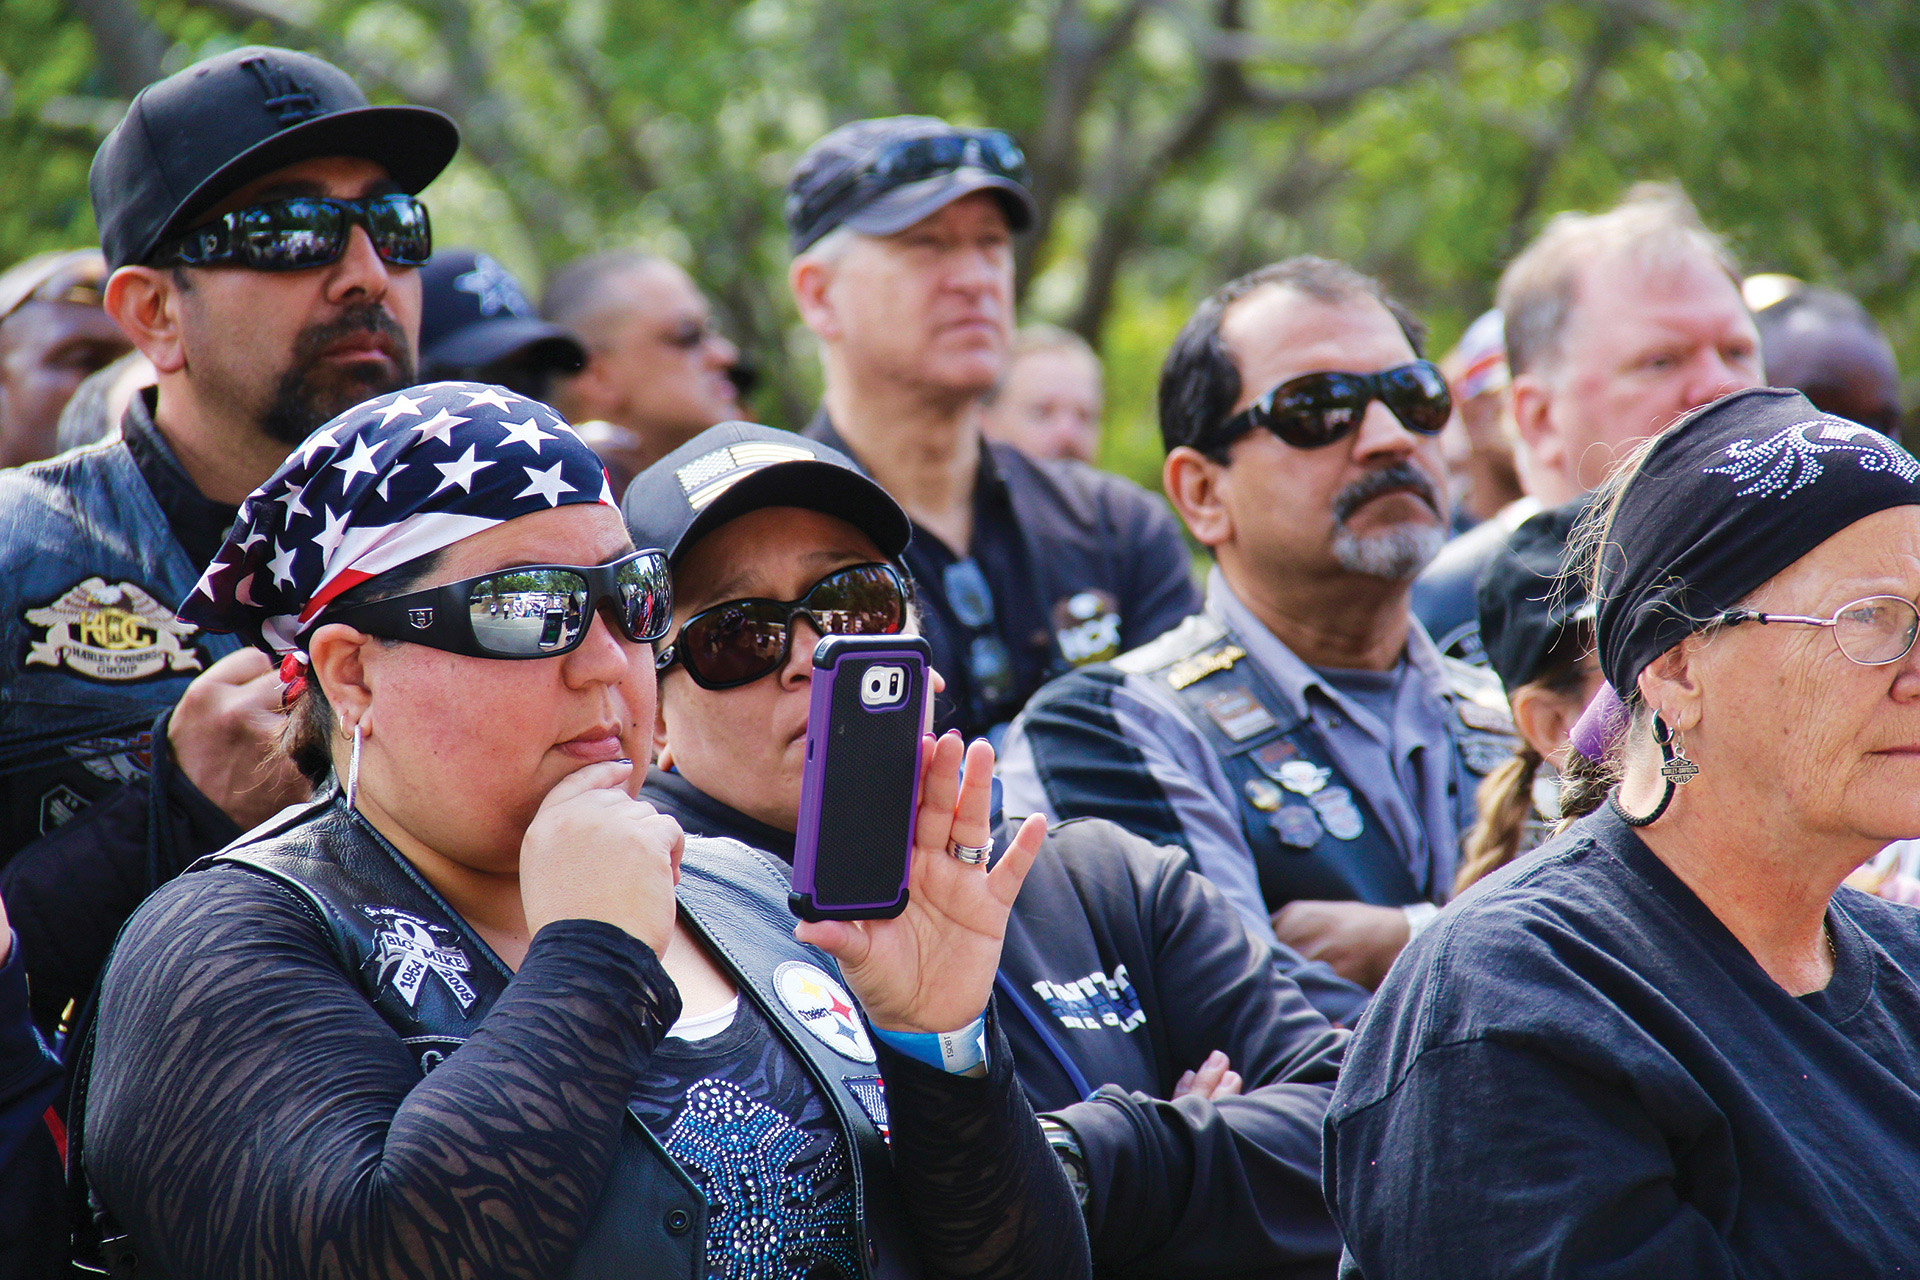 scenes-from-the-6th-annual-heroes-ride-4